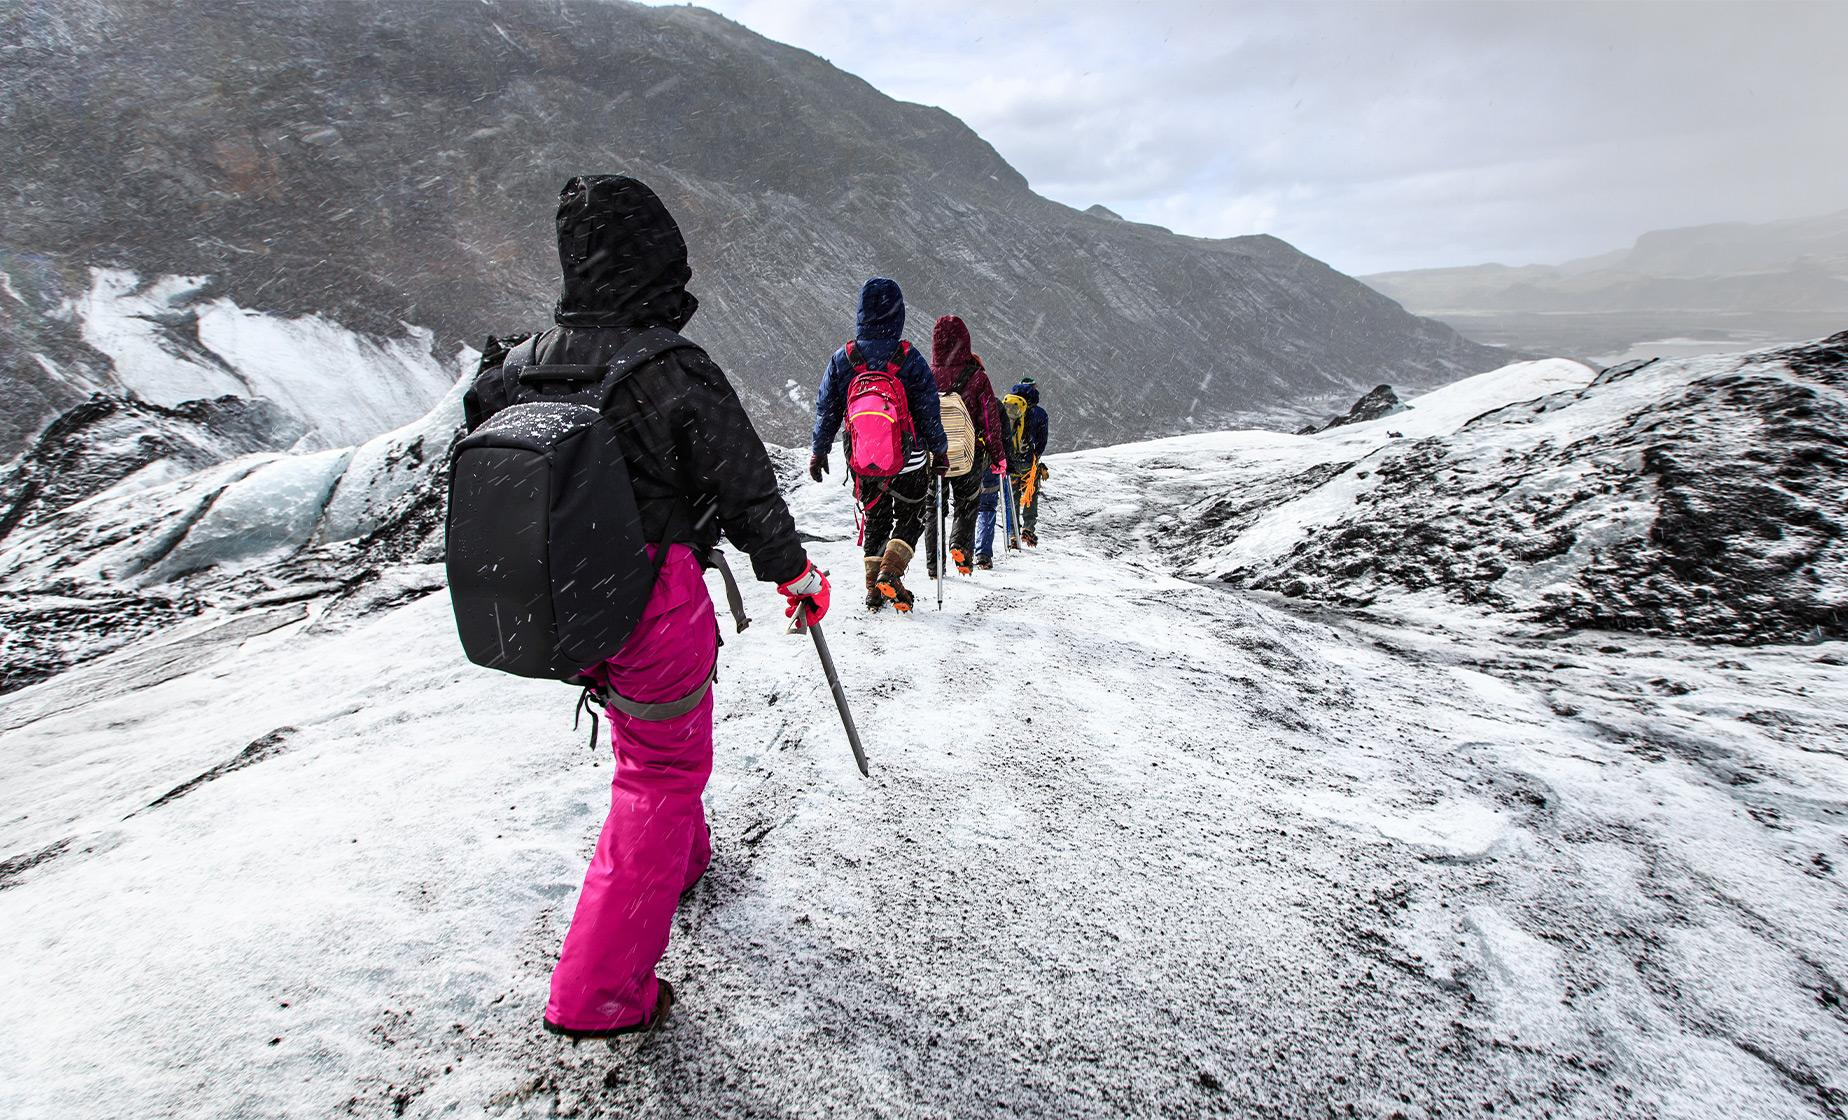 Hike and ice climb Solheimajokull glacier, see Skogafoss waterfall, near Skoga River